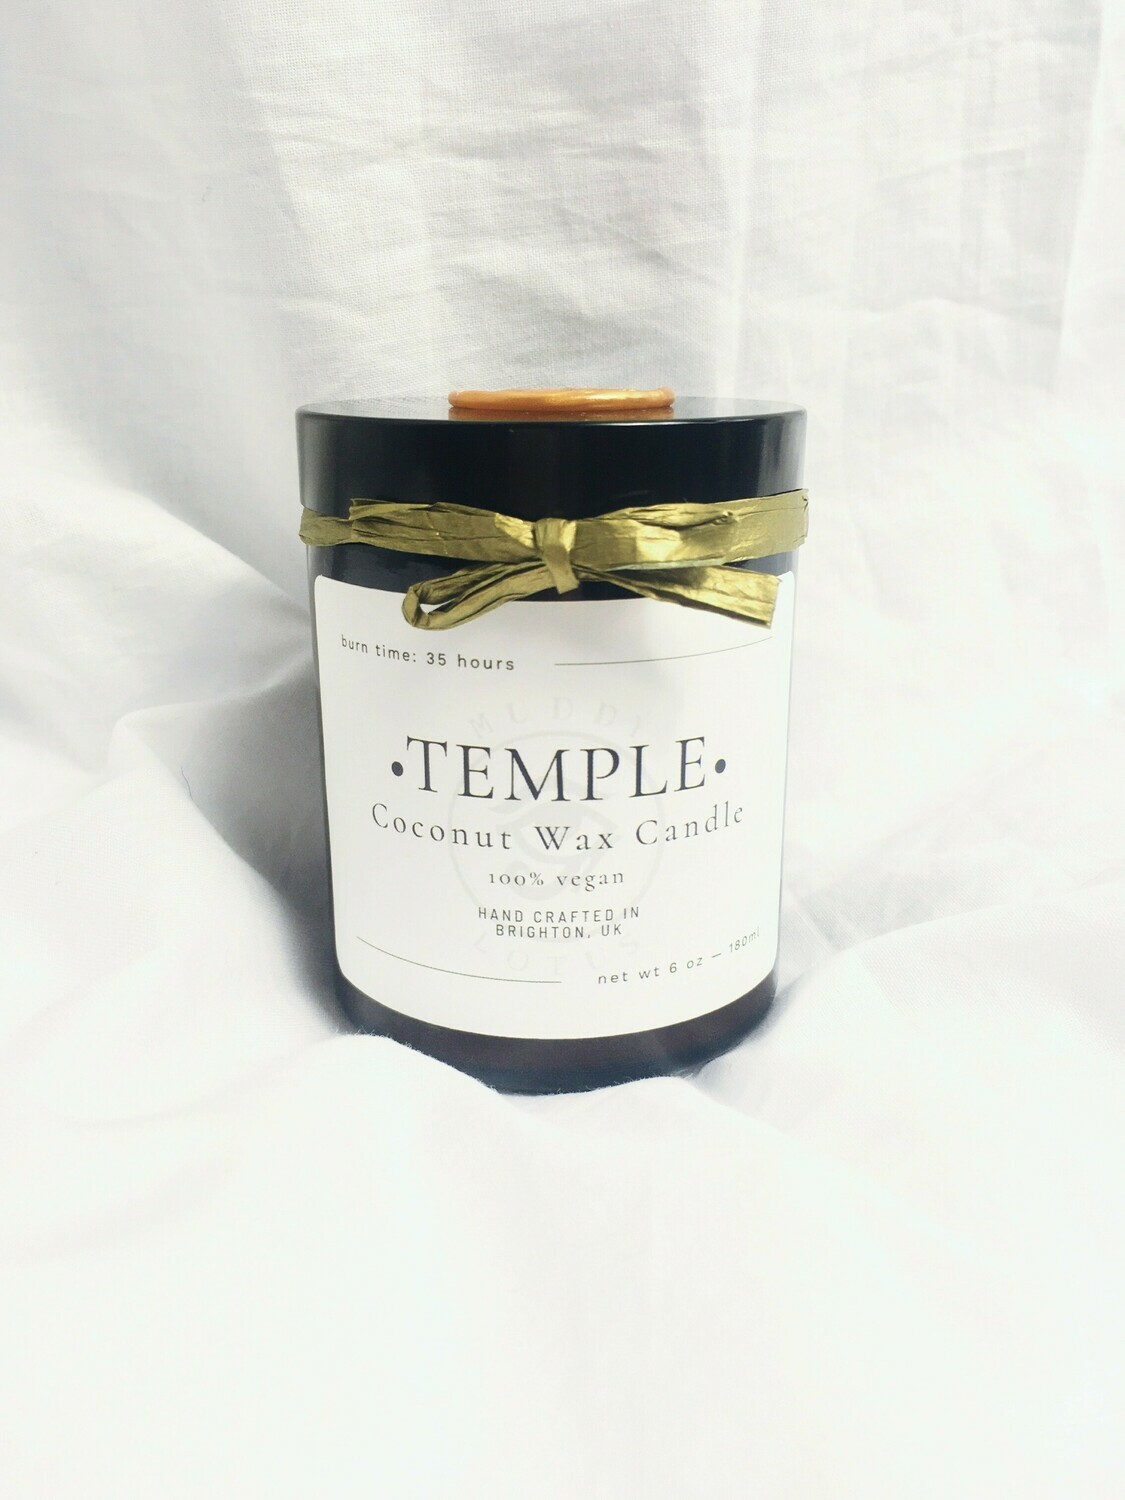 Temple Coconut Wax Vegan Candle